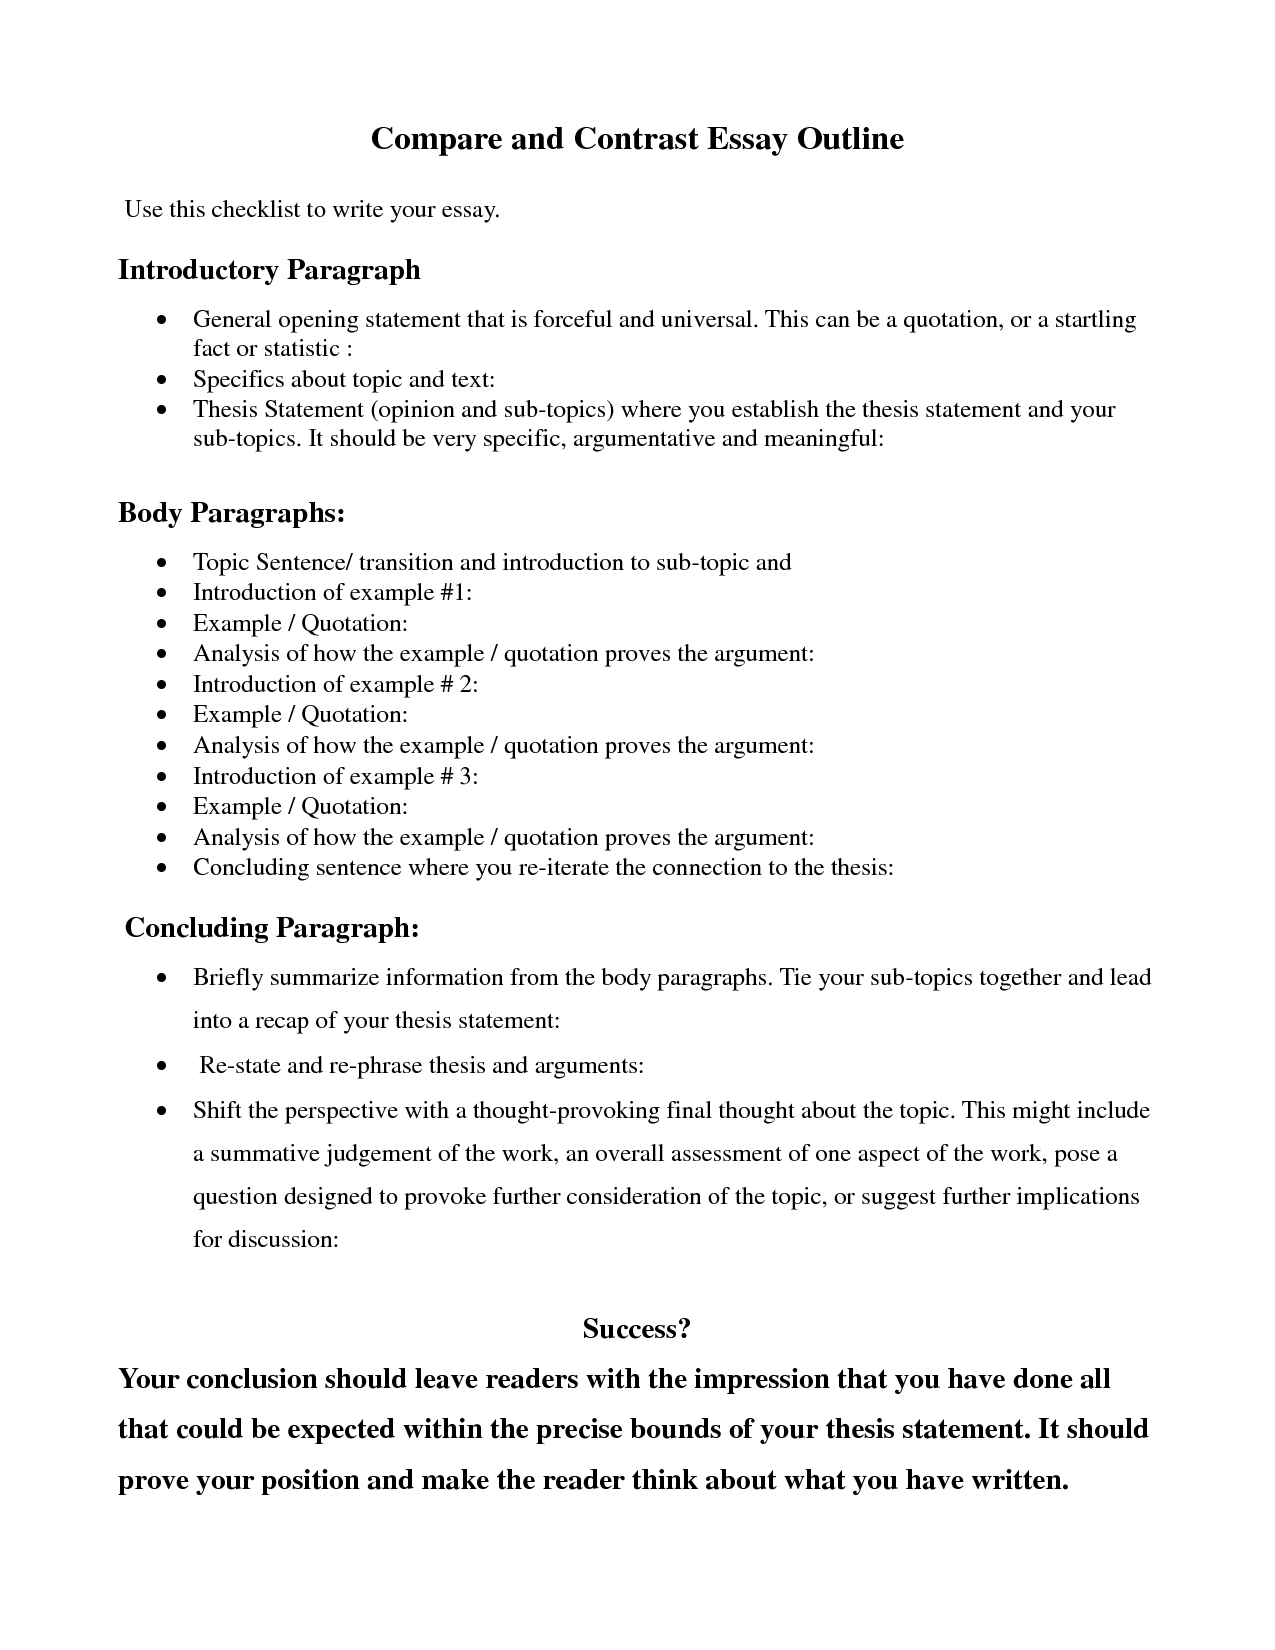 001 Comparing And Contrasting Essay Unique Compare Contrast Topics Easy Sample 6th Grade Outline Middle School Full